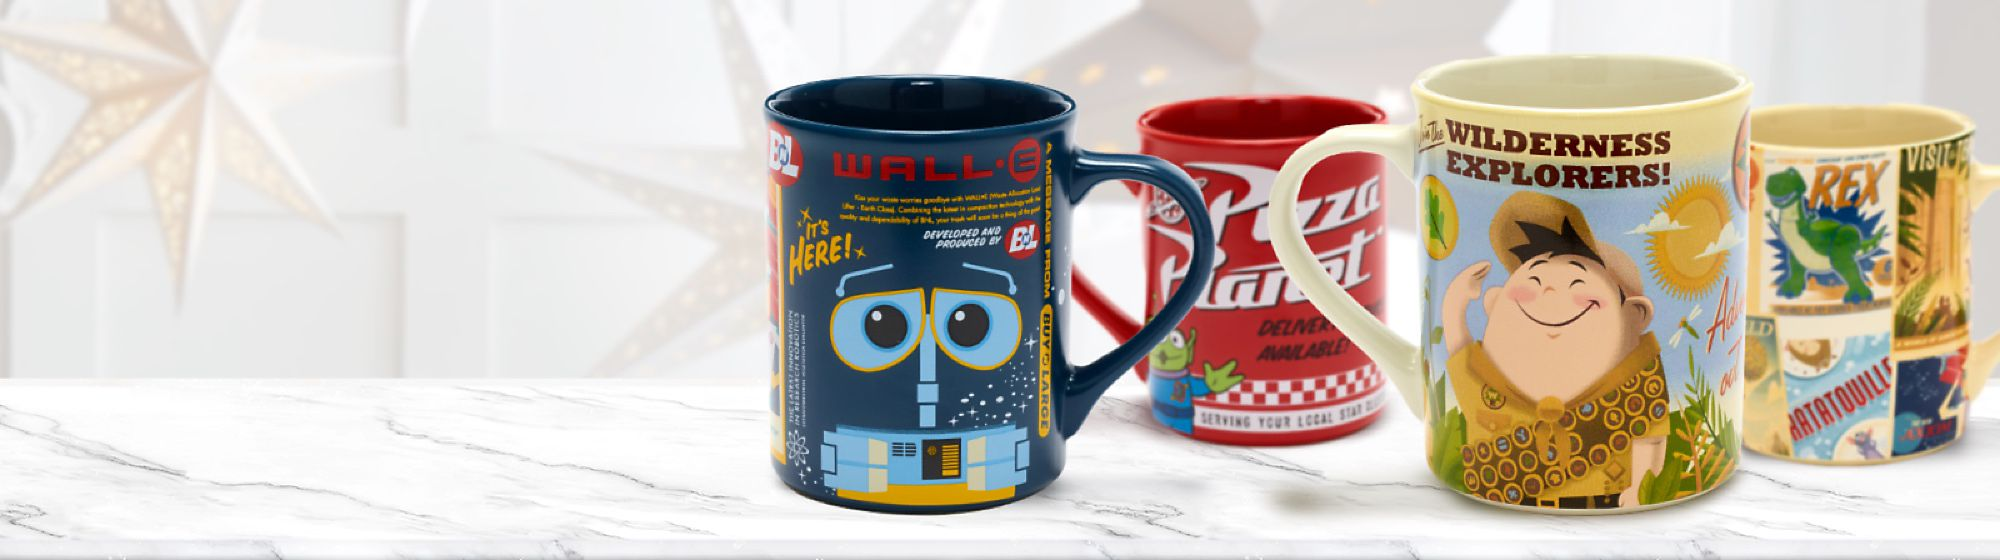 Mugs, Cups & Bottles Discover our range of Disney, Pixar, Star Wars and Marvel mugs, cups and bottles featuring all your favourite characters